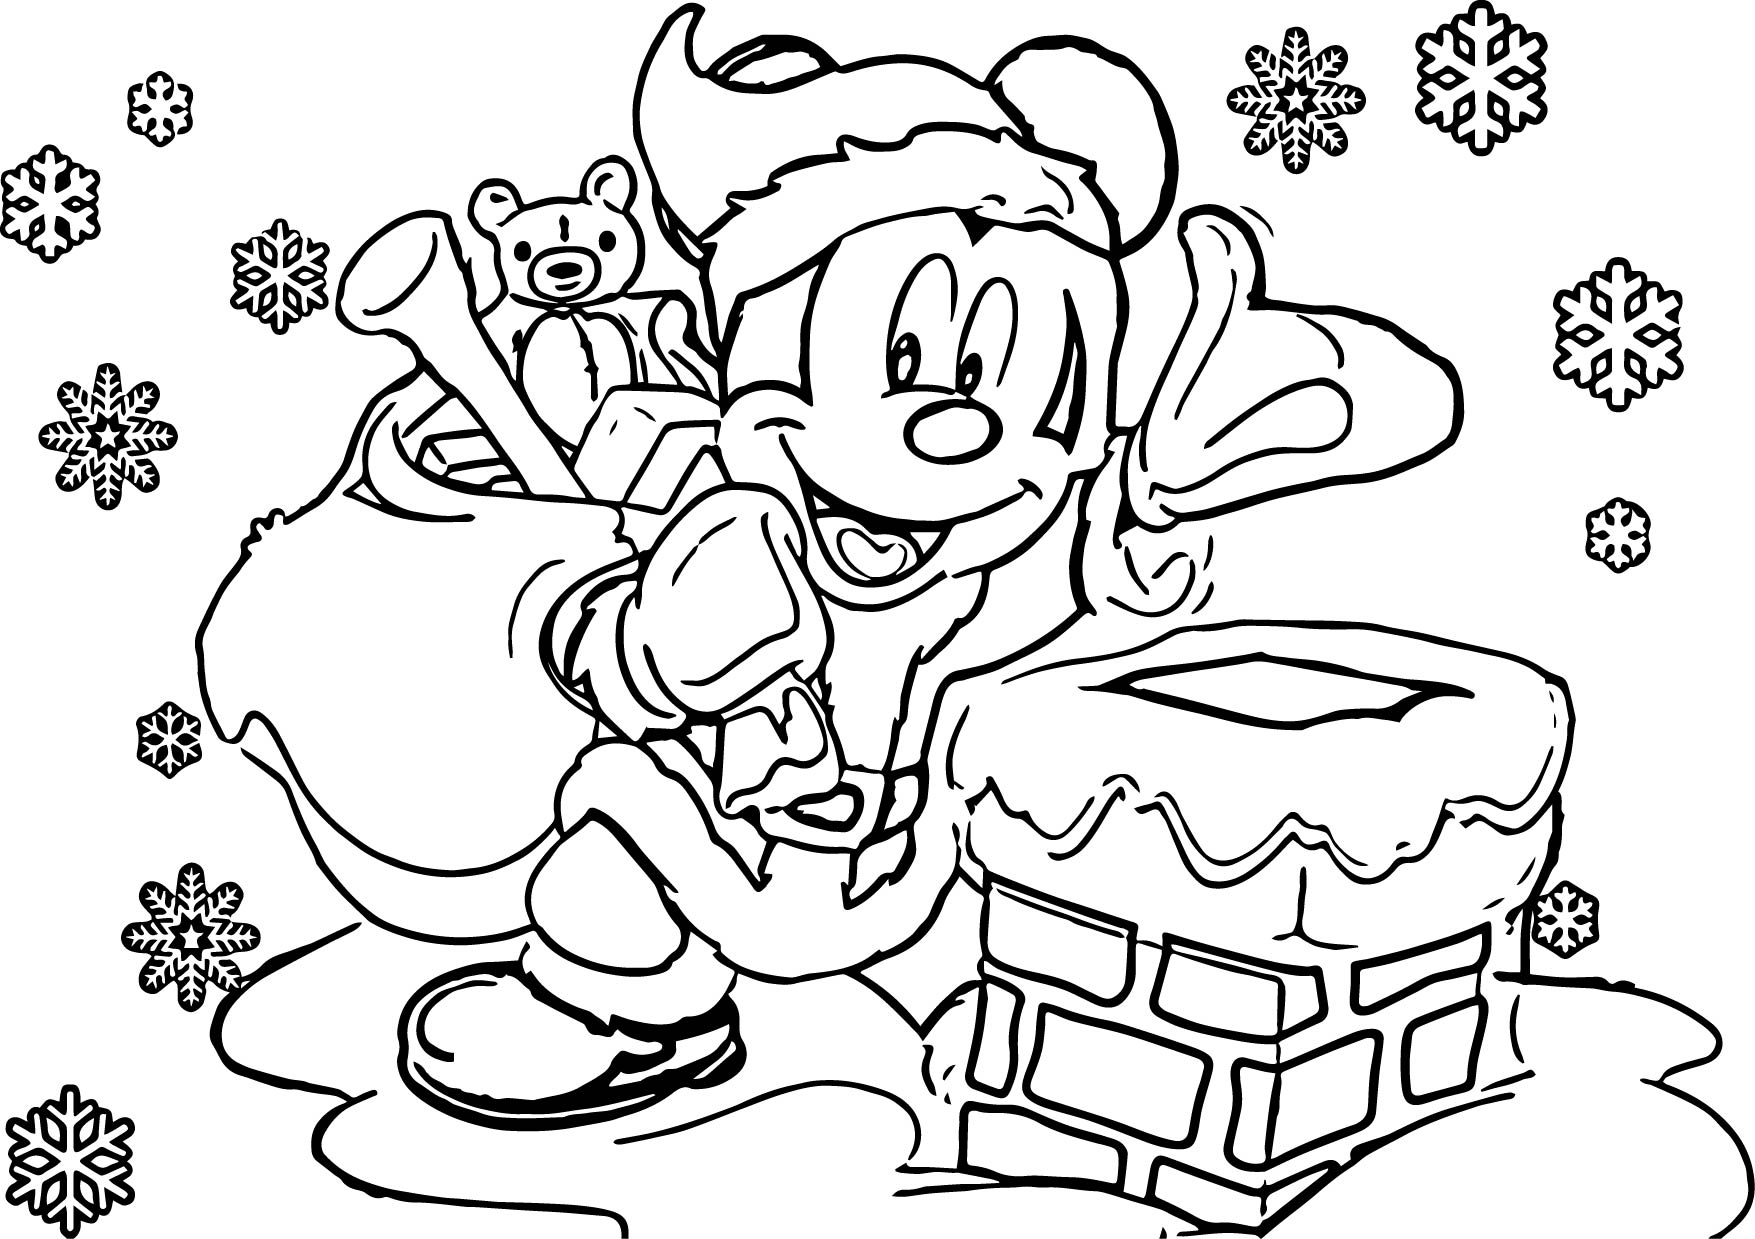 Christmas Coloring In Pictures With New Disney Princess Pages Gallery Printable